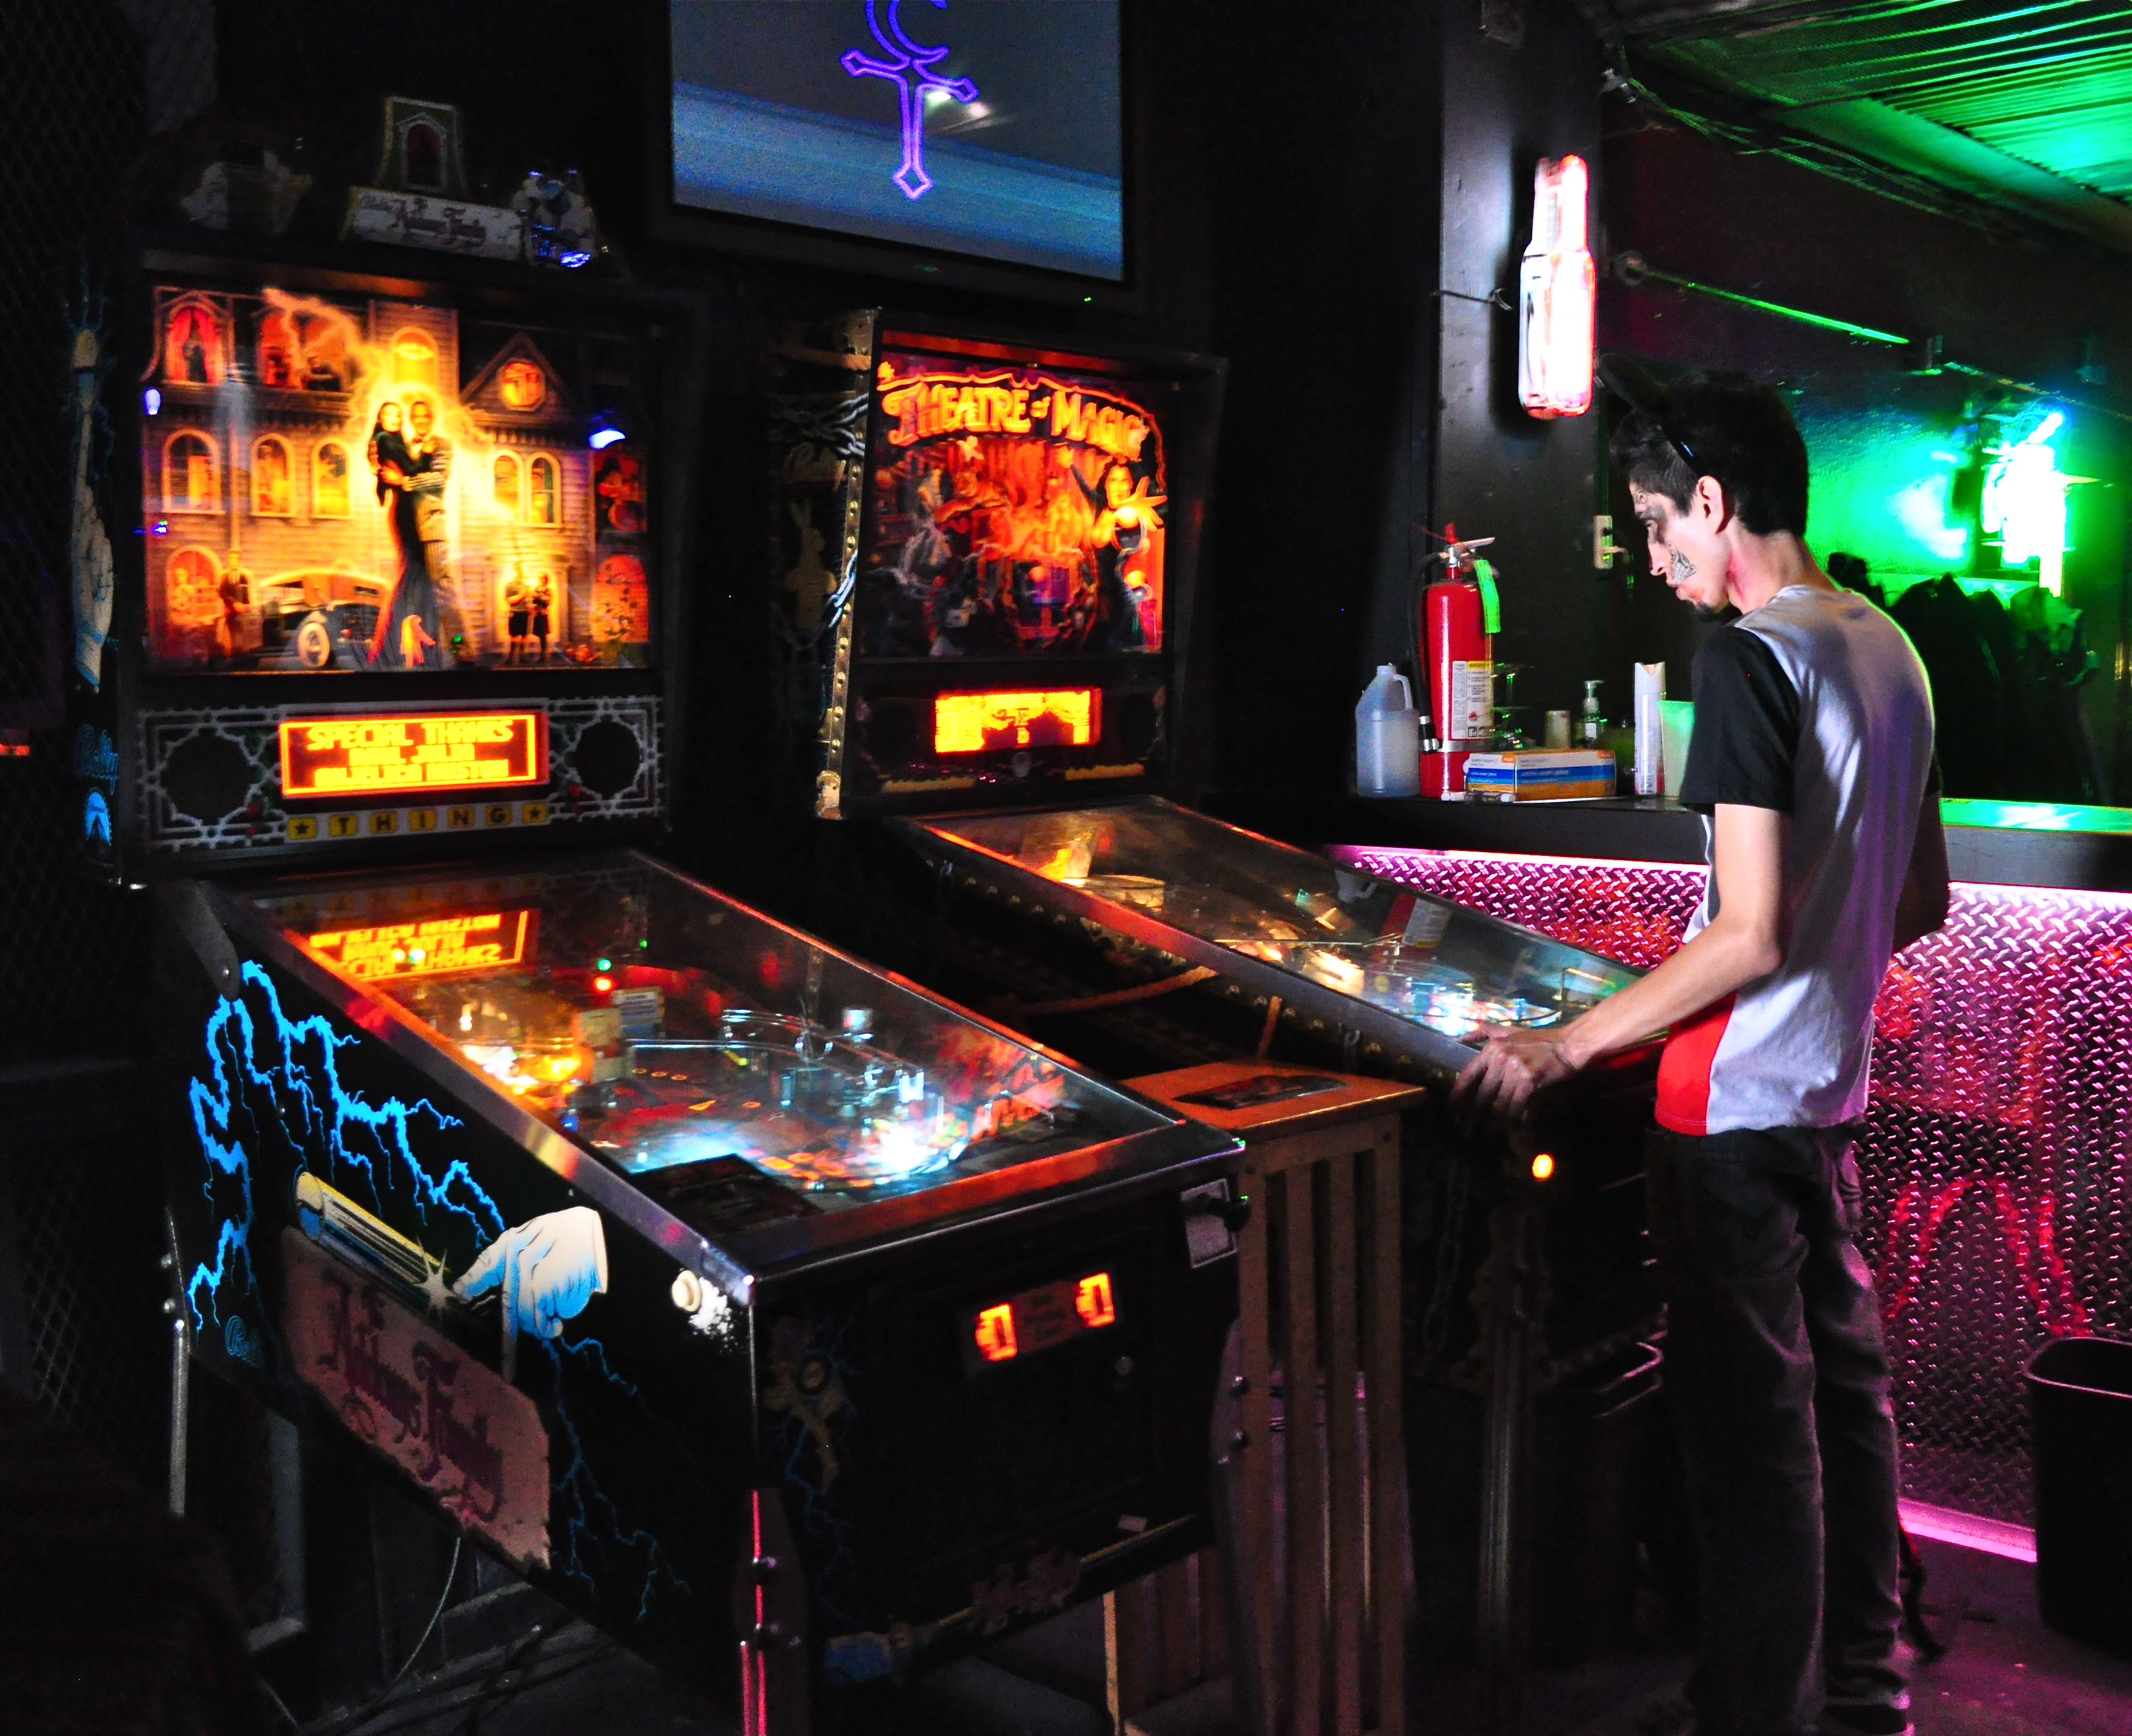 When the dance floor became too crowded, arcade games was always an option.